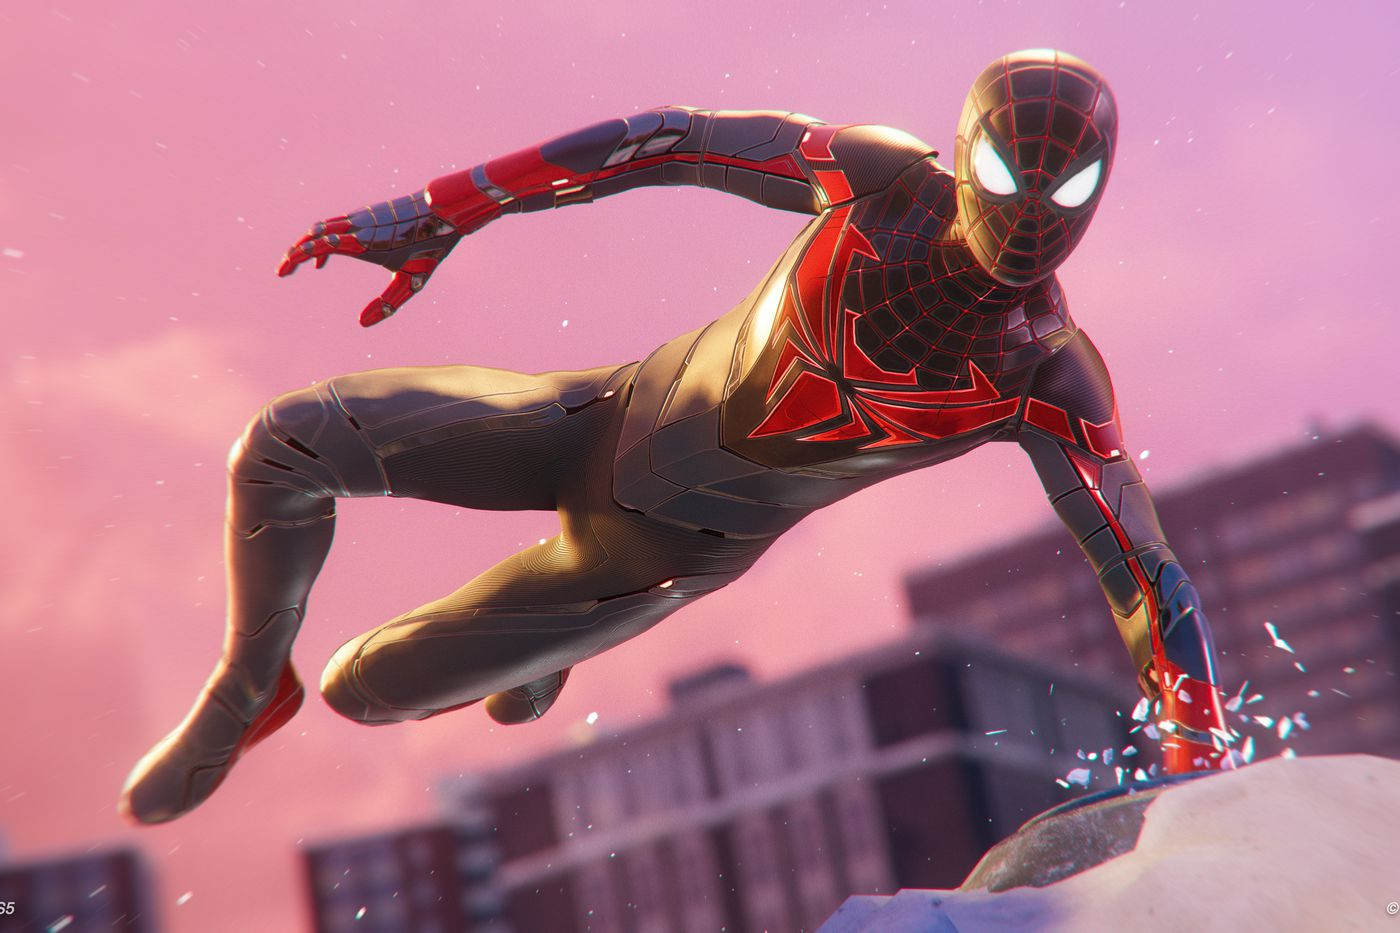 Spider-Man: Miles Morales video game for the PS5